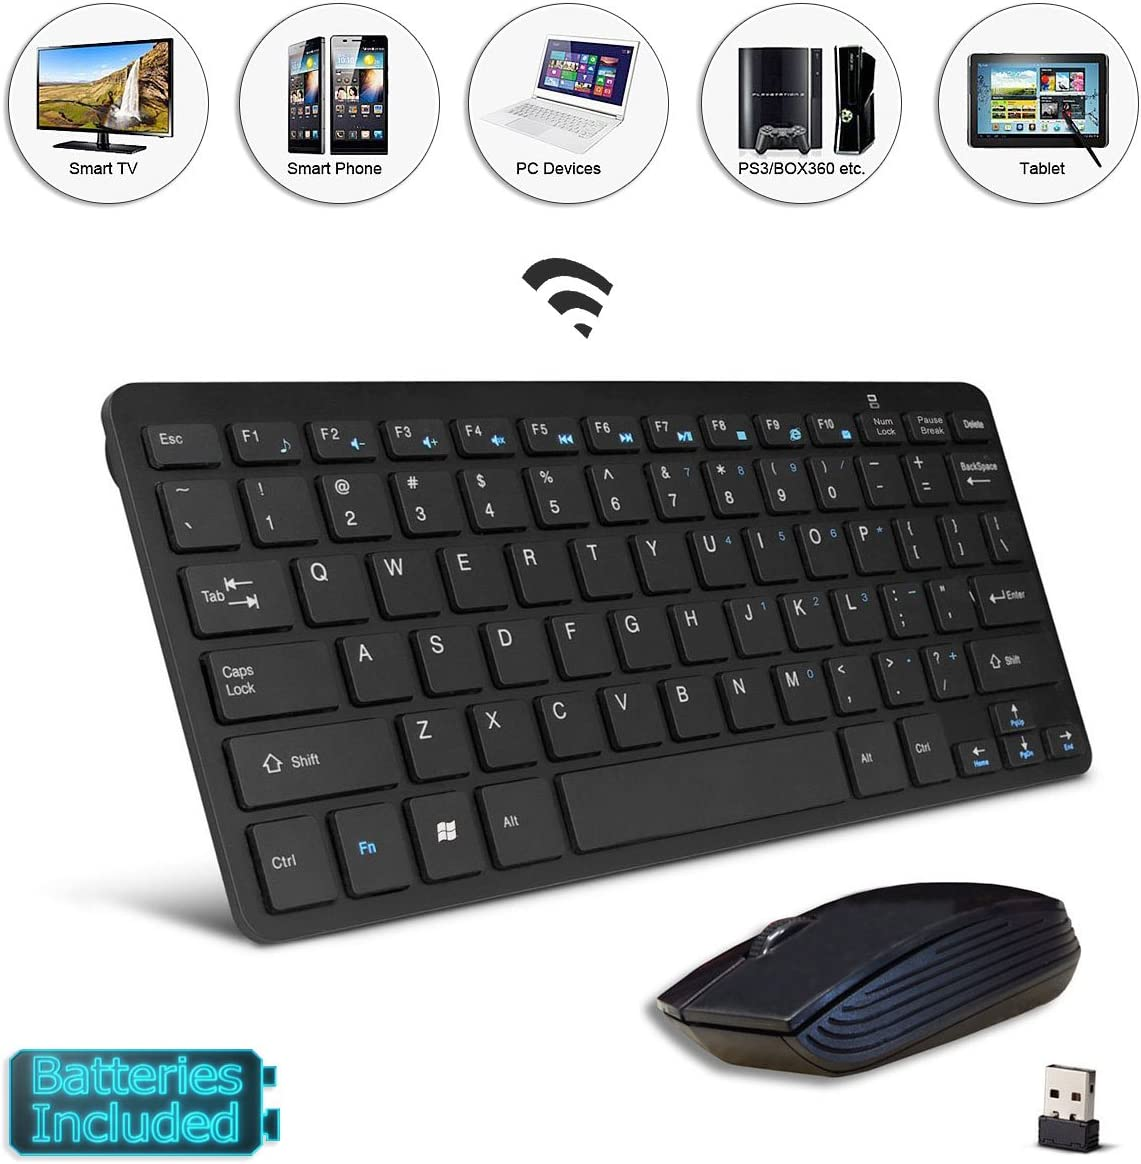 Browser for Sharp Aquos LC-40UG7252K 40 Black Wireless Mini Keyboard /& Mouse Easy Control Remote Control for YouTube